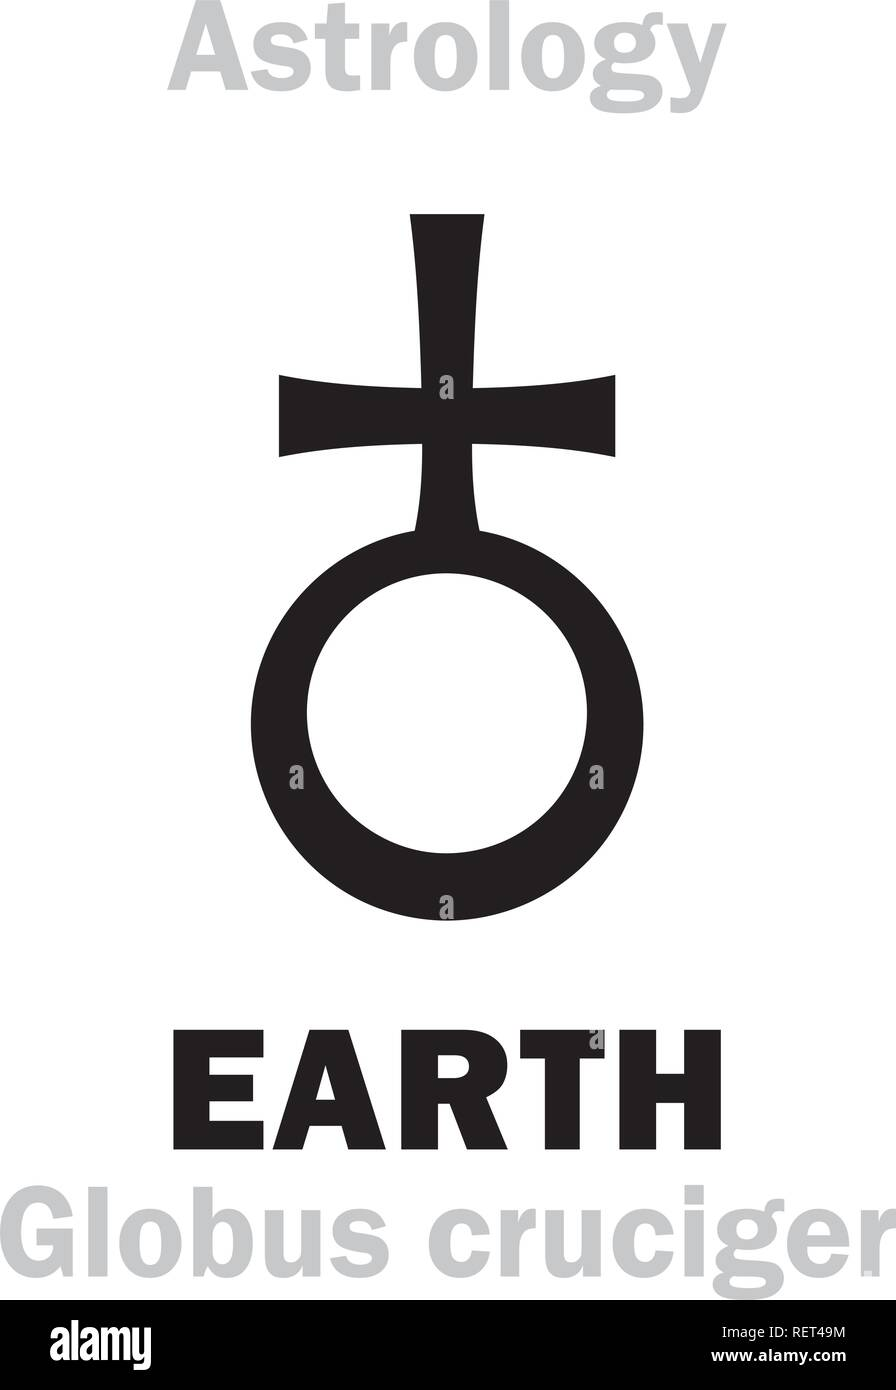 Astrology Alphabet: Sign of EARTH (The «Globus cruciger» - the orb and cross); Salvator Mundi (Latin for 'Saviour of the World'). Hieroglyphiс sign. - Stock Vector